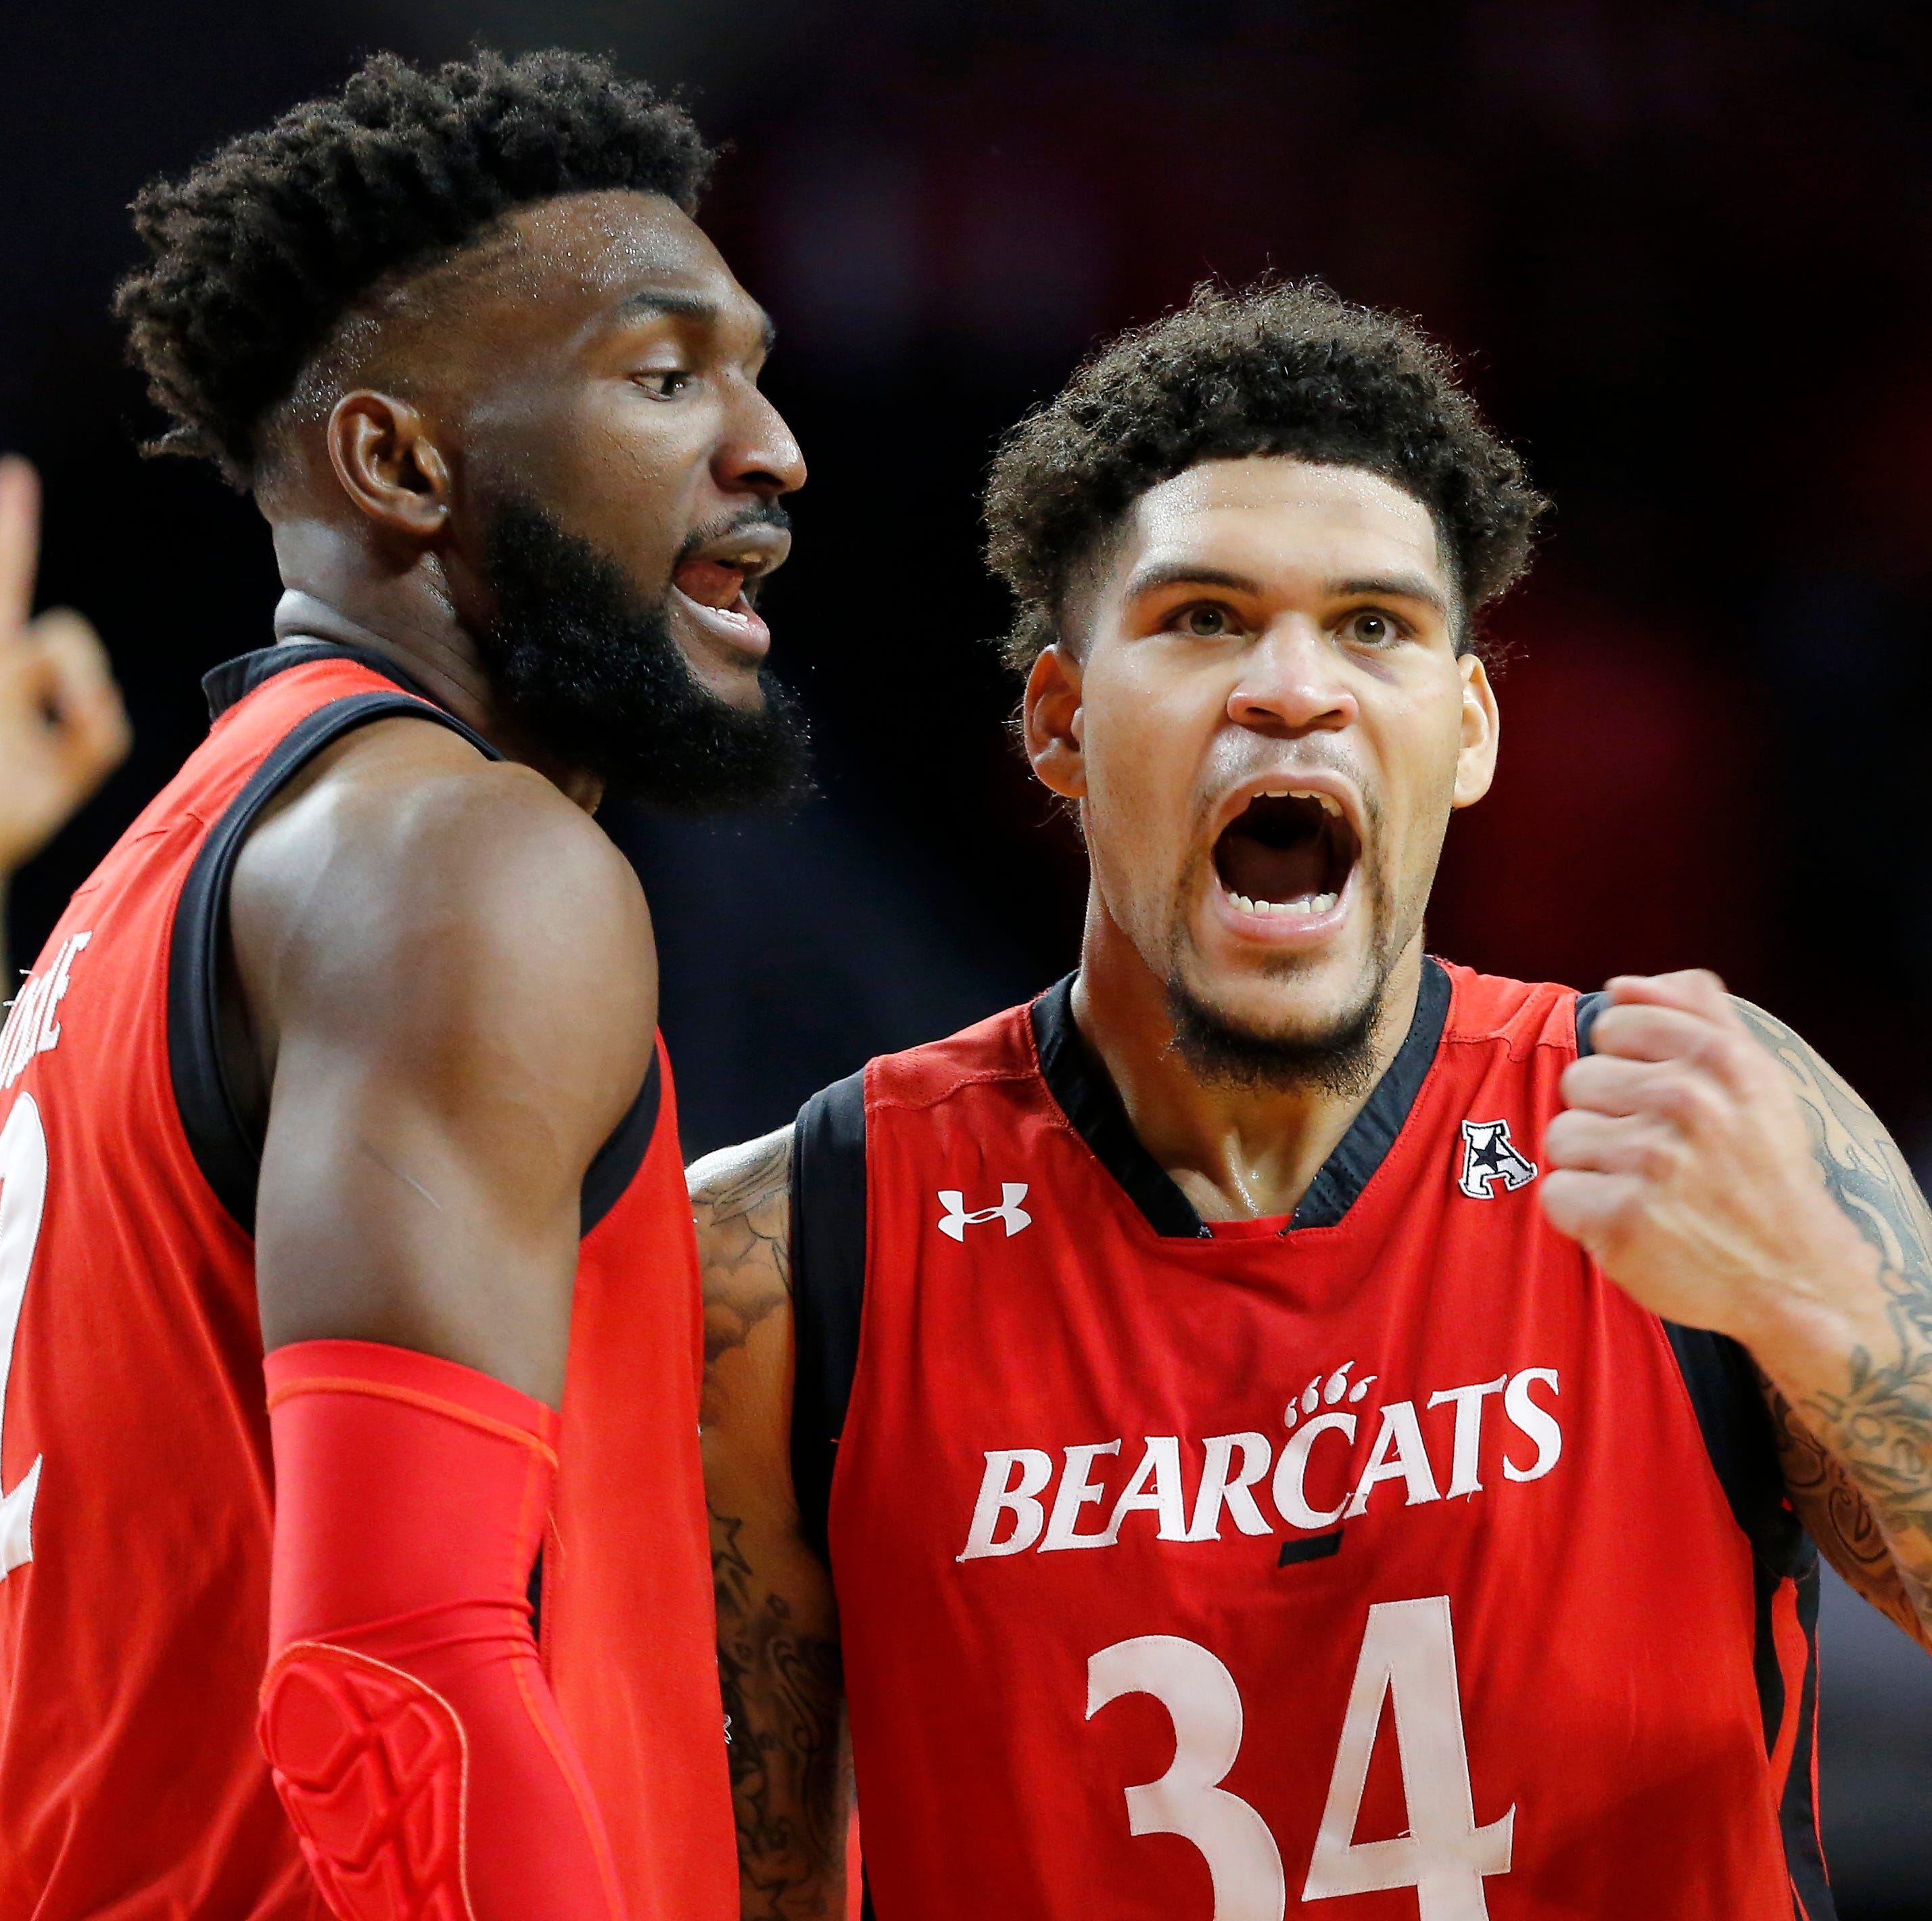 UC Bearcats among college basketball polls' others receiving votes